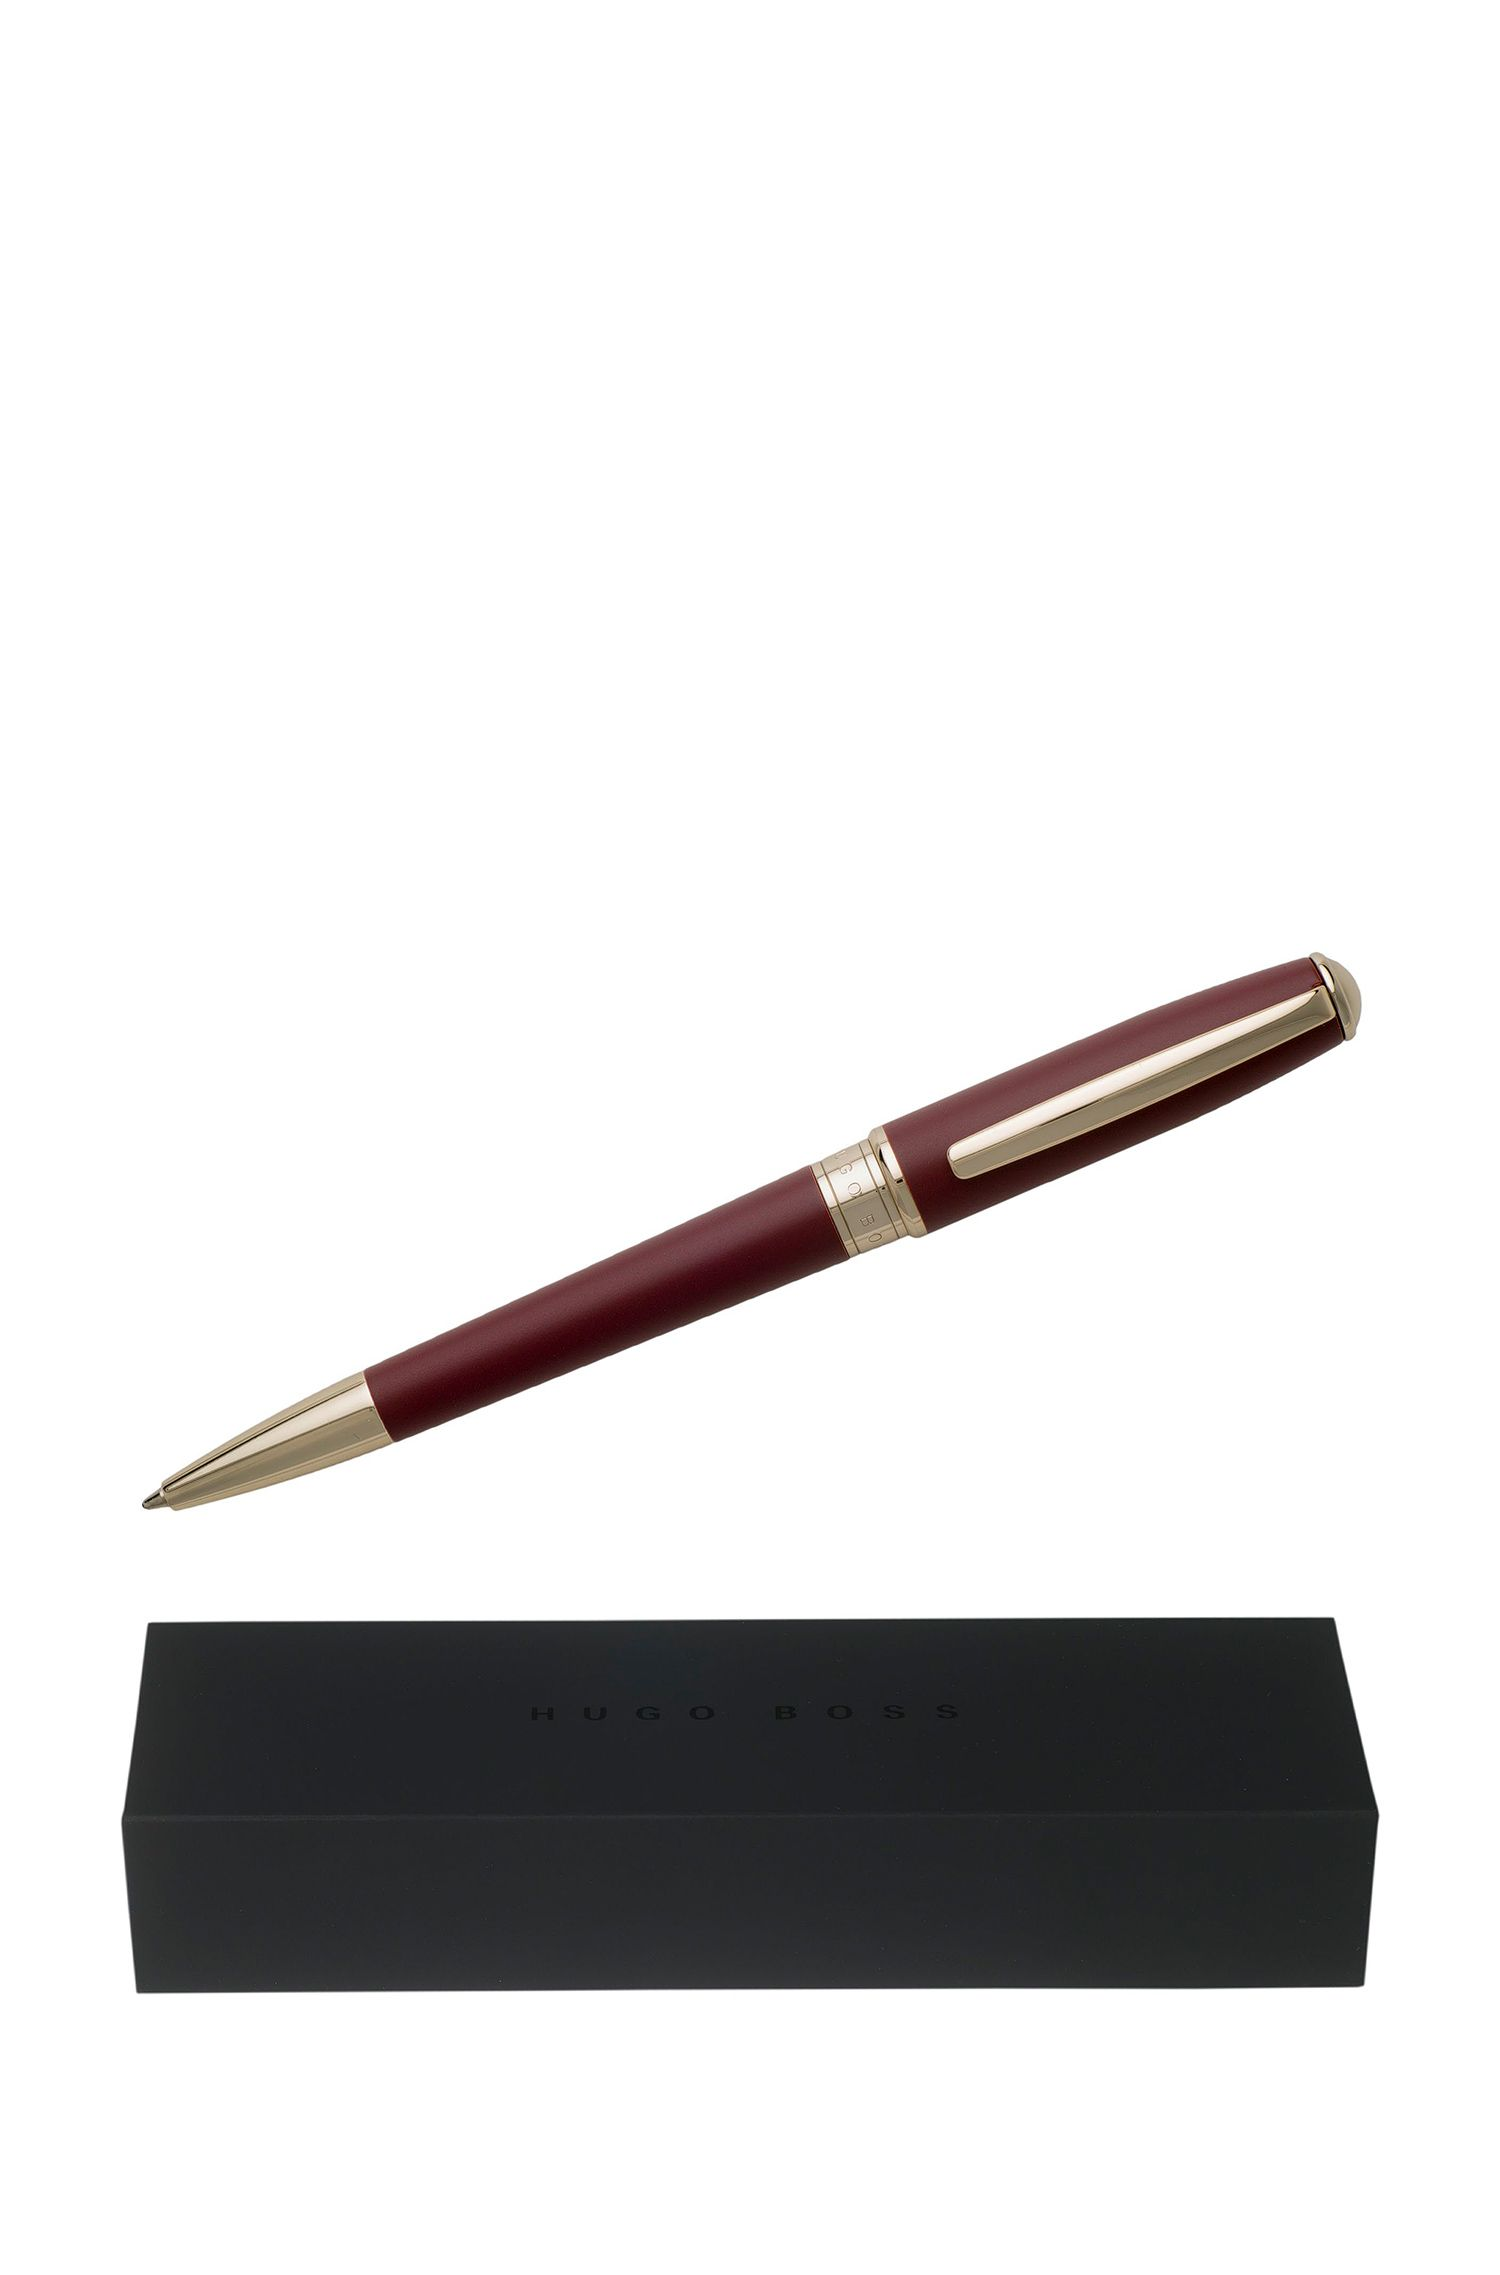 Essential Burgundy Ballpoint Pen